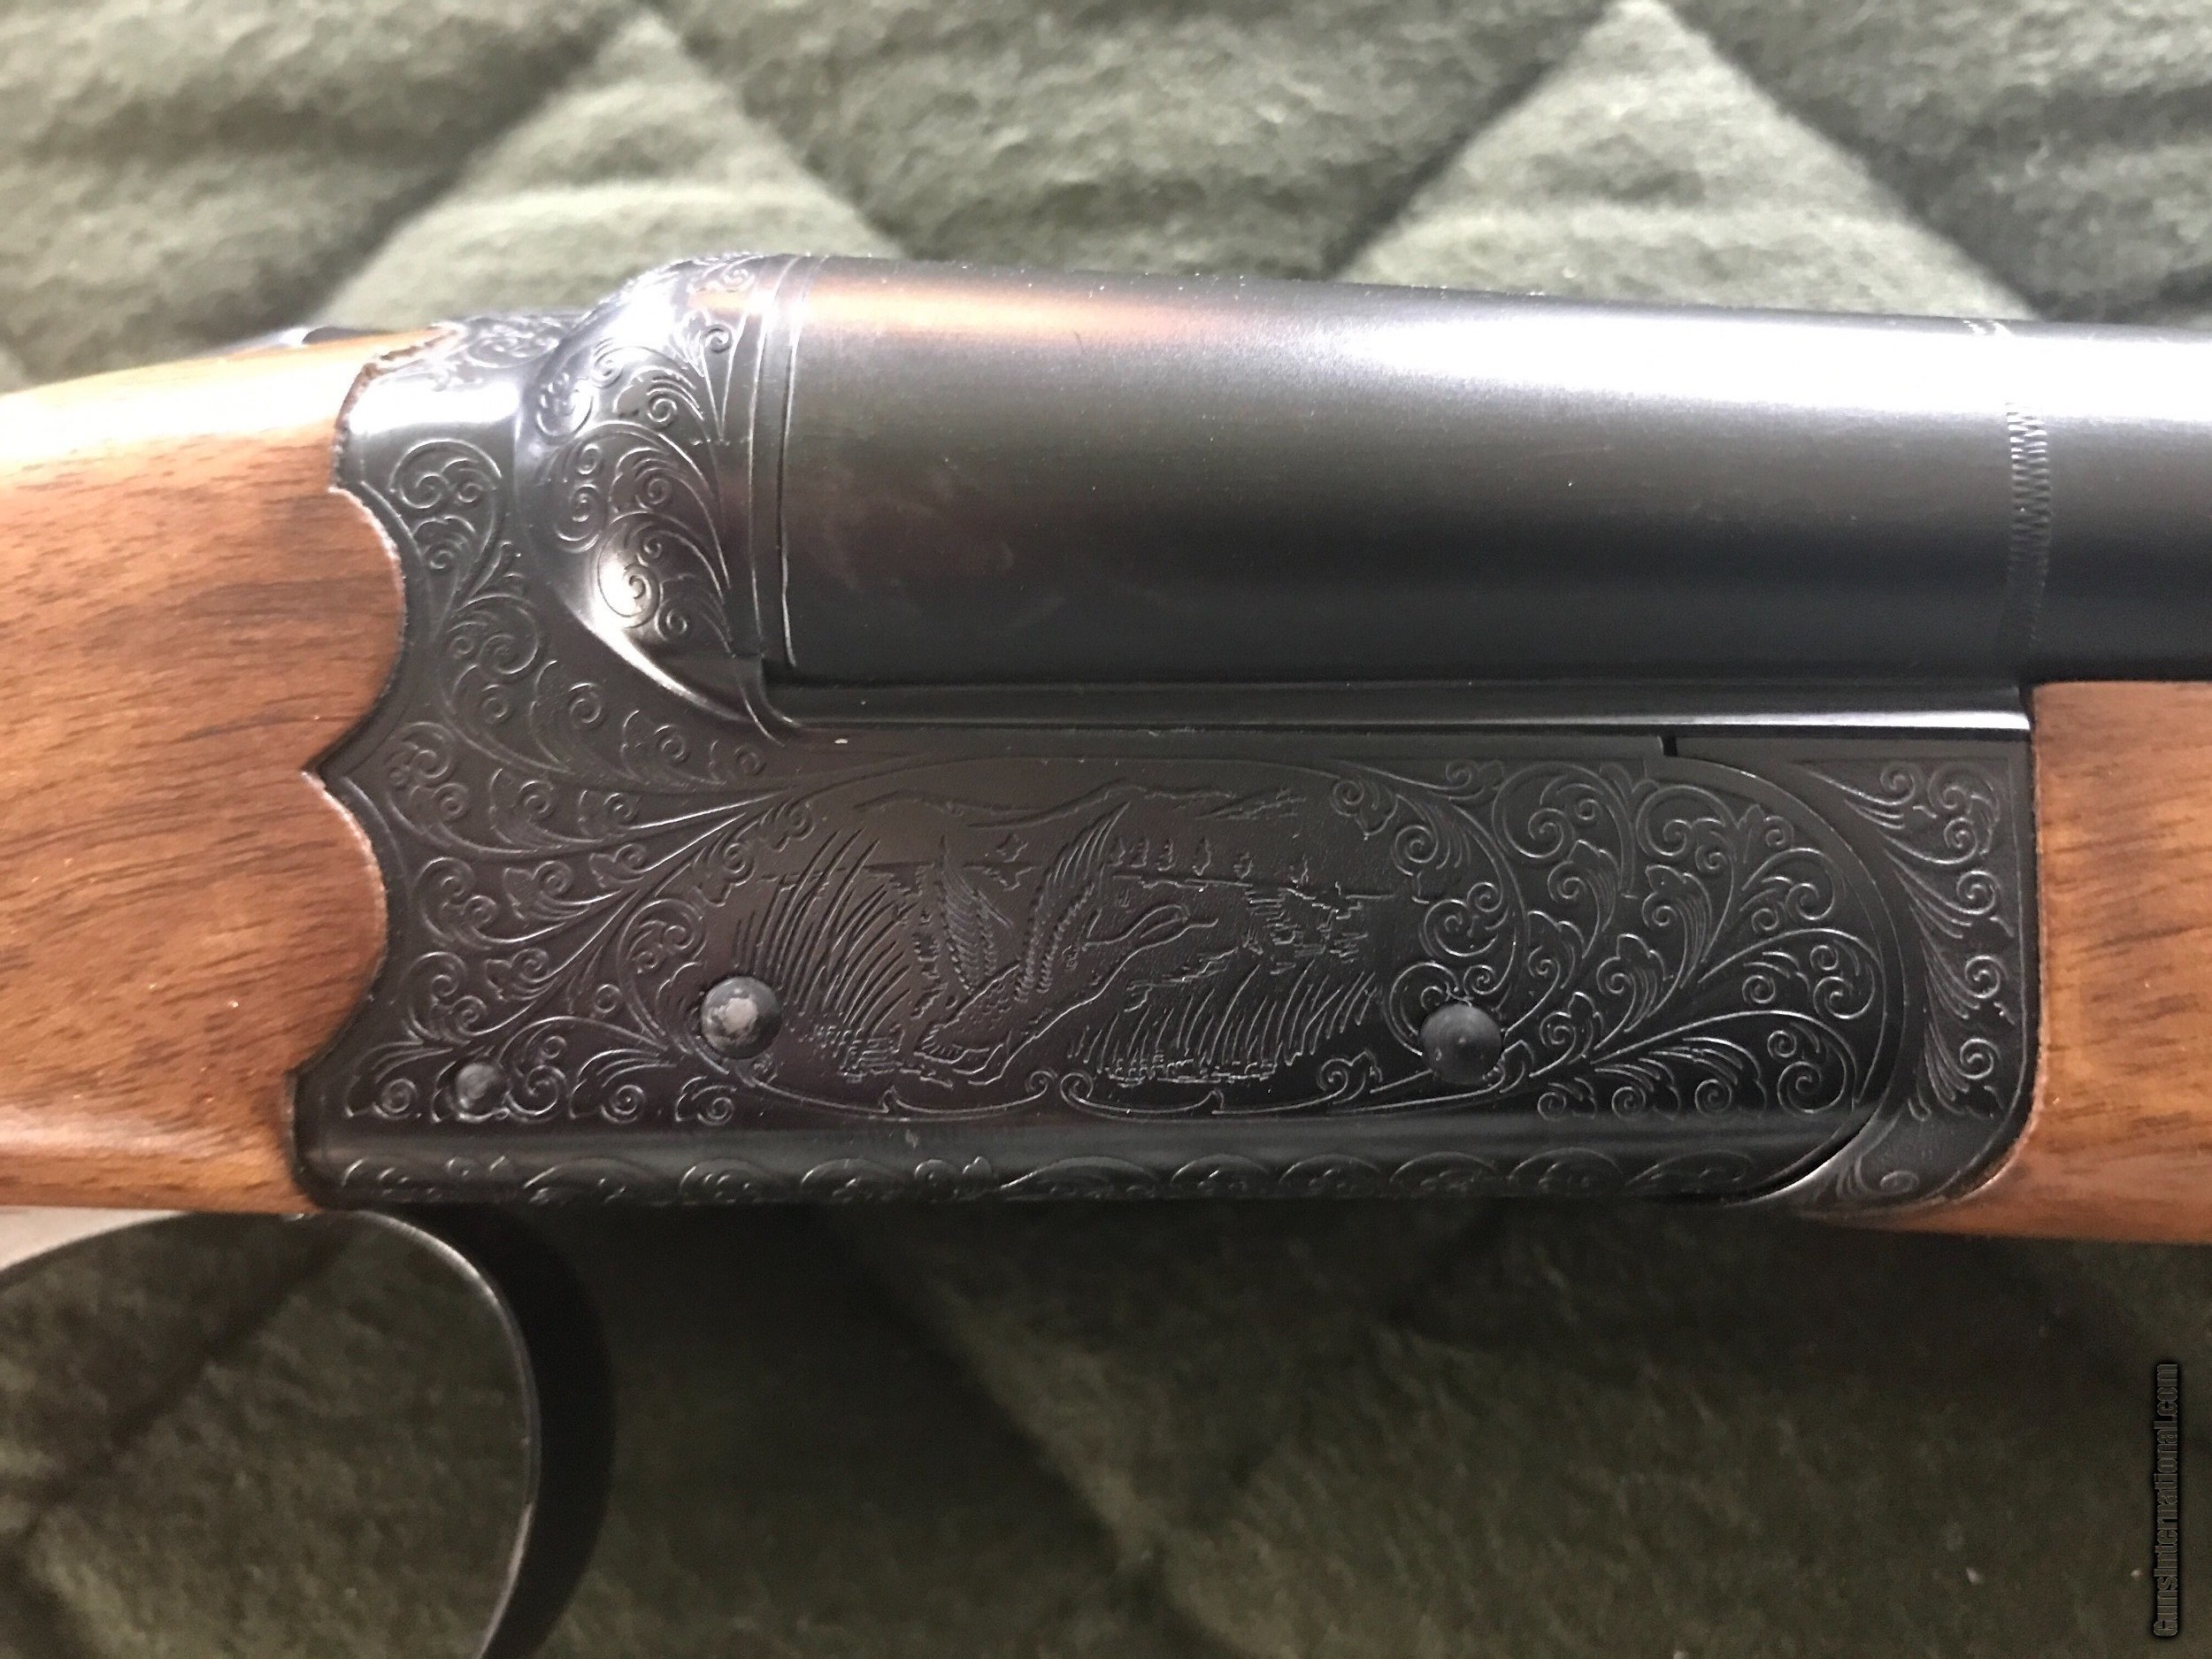 Ithaca 20 gauge automatic